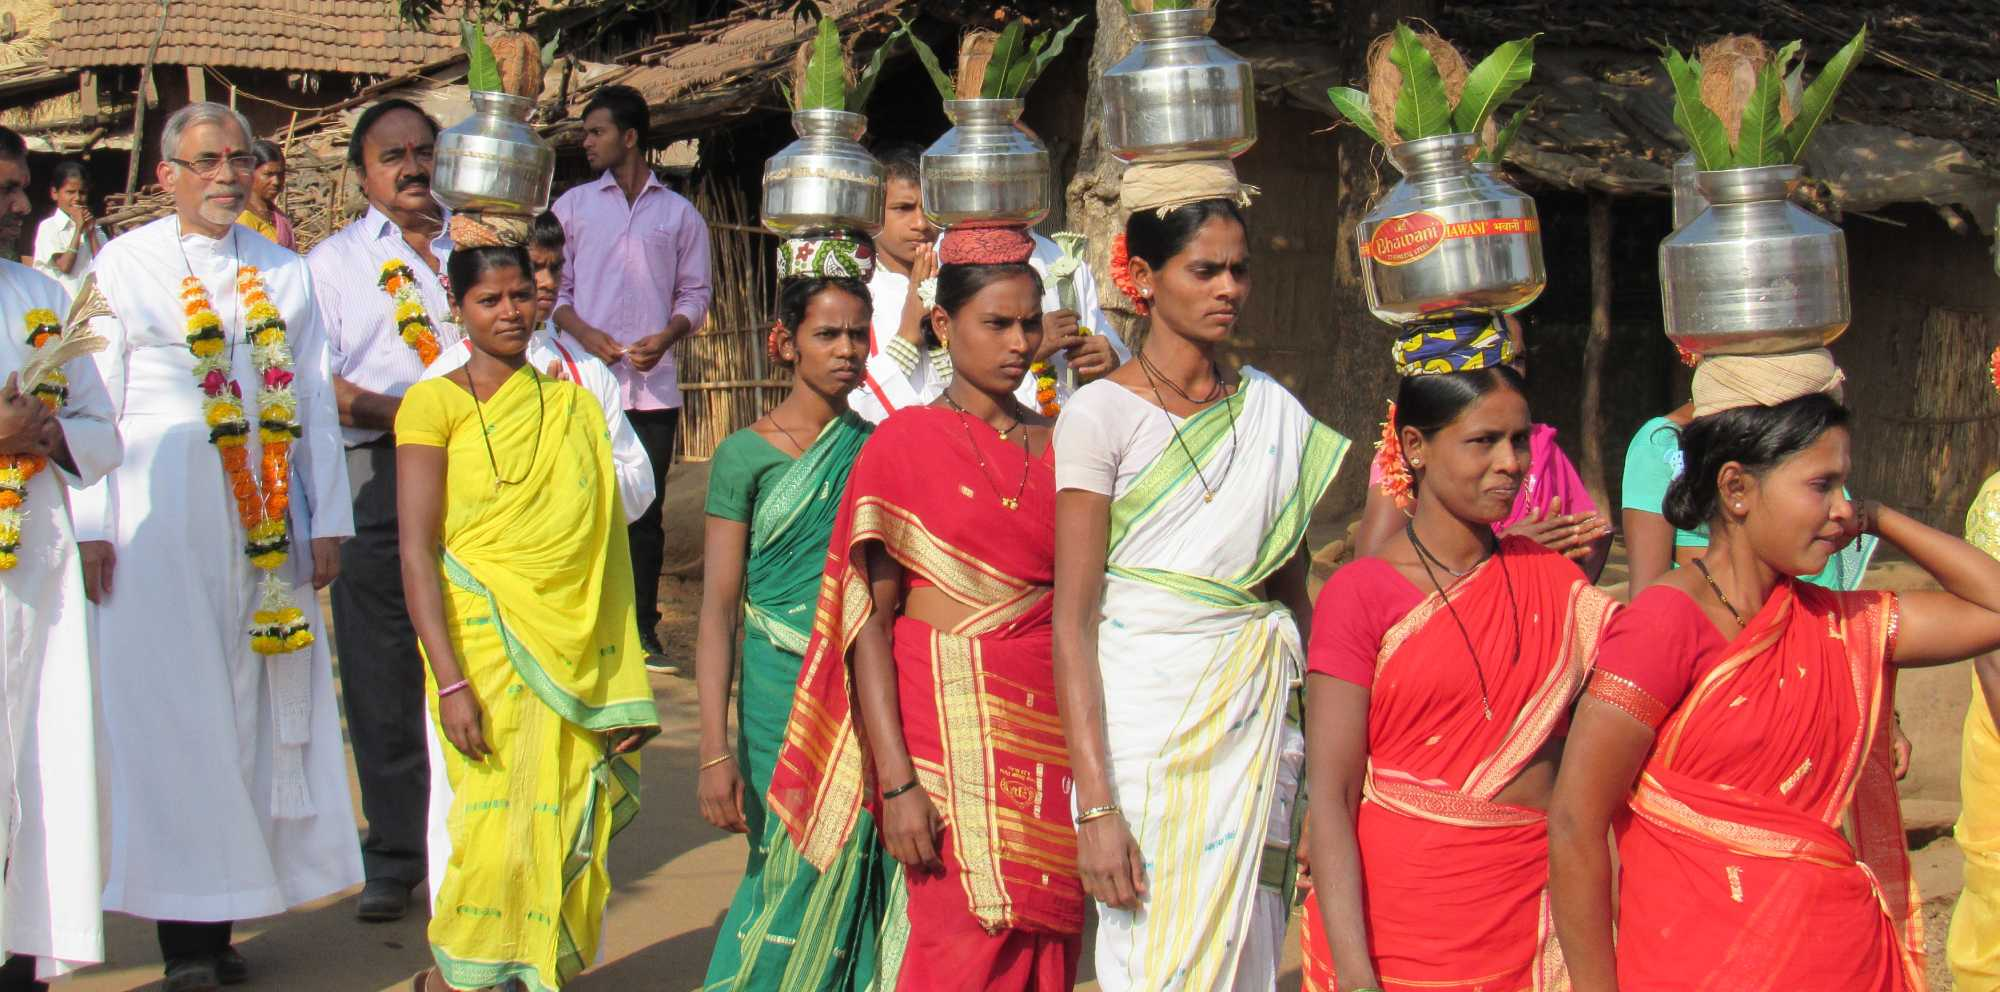 Women Carrying water jugs on their jead